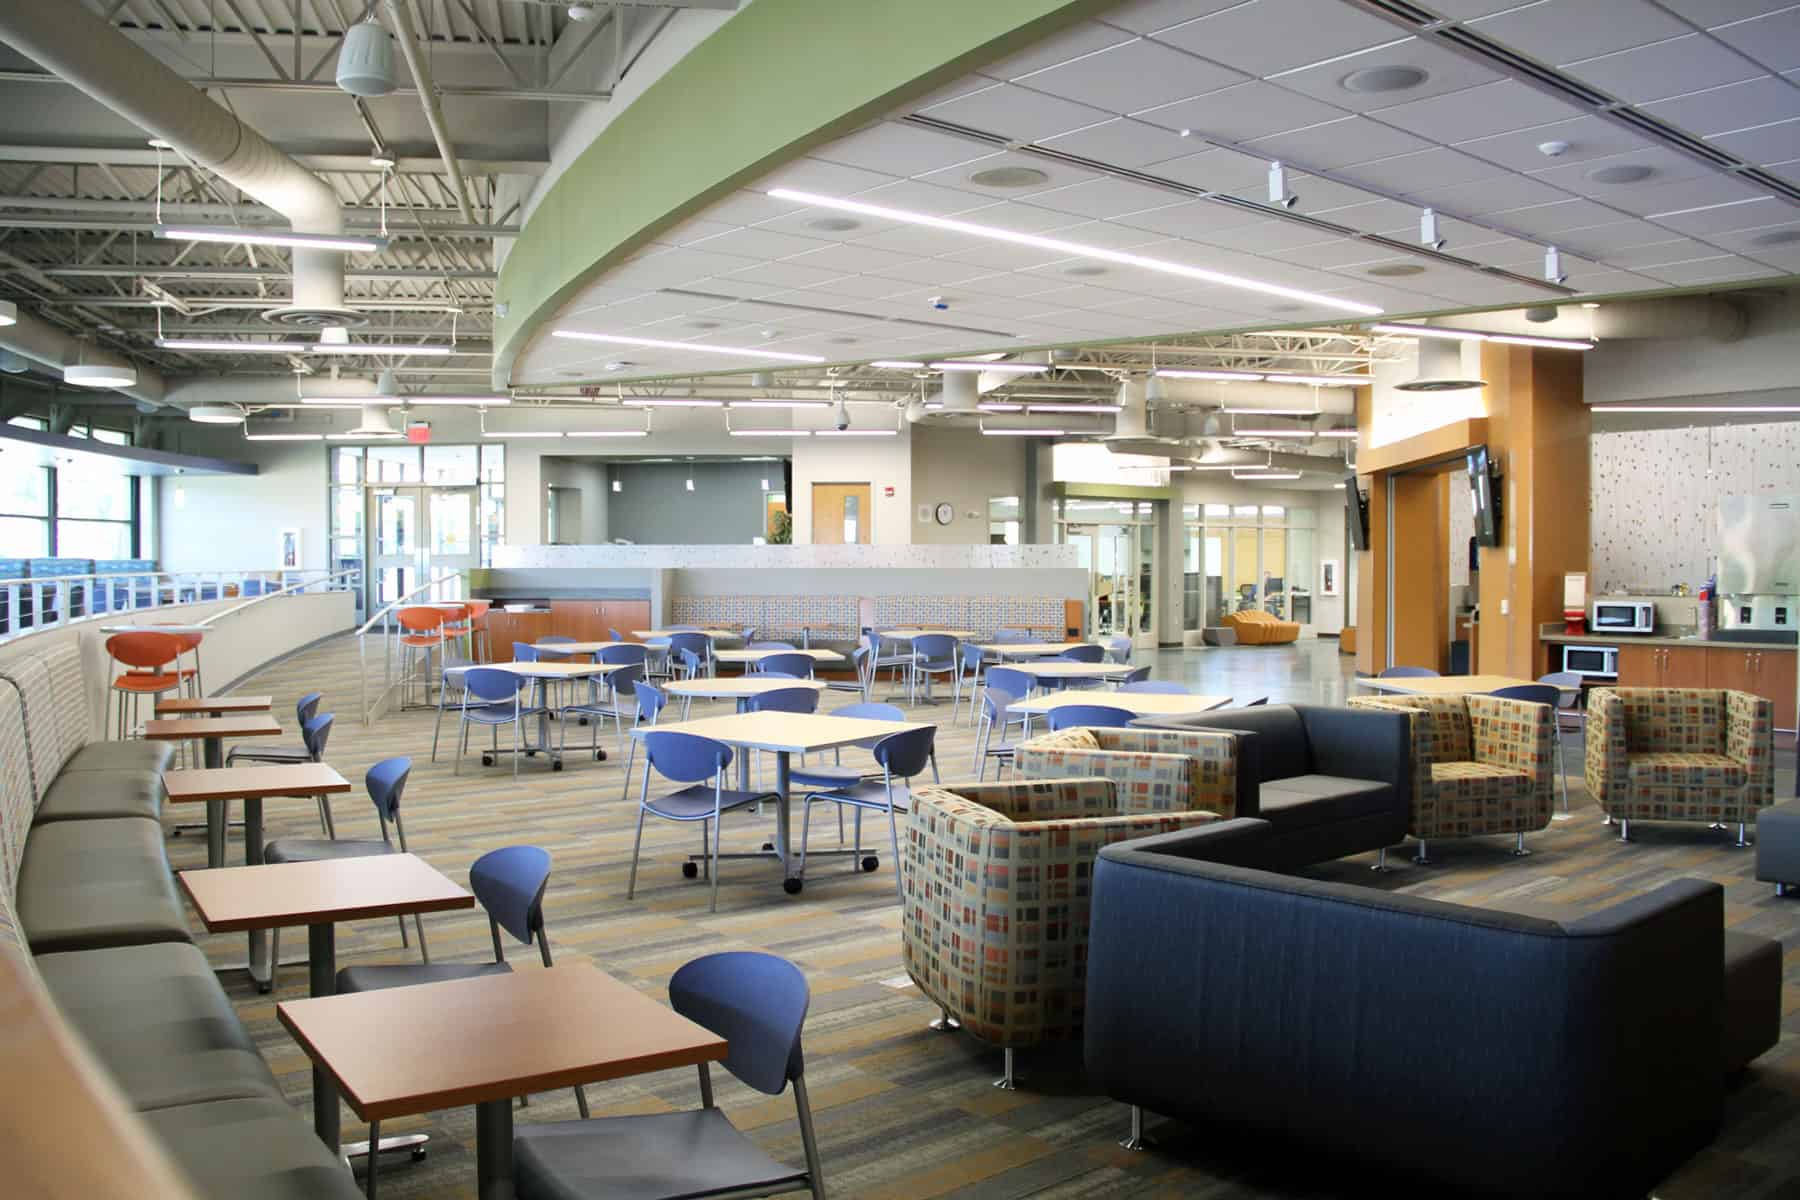 Making Campus Connections With Higher Education Furniture